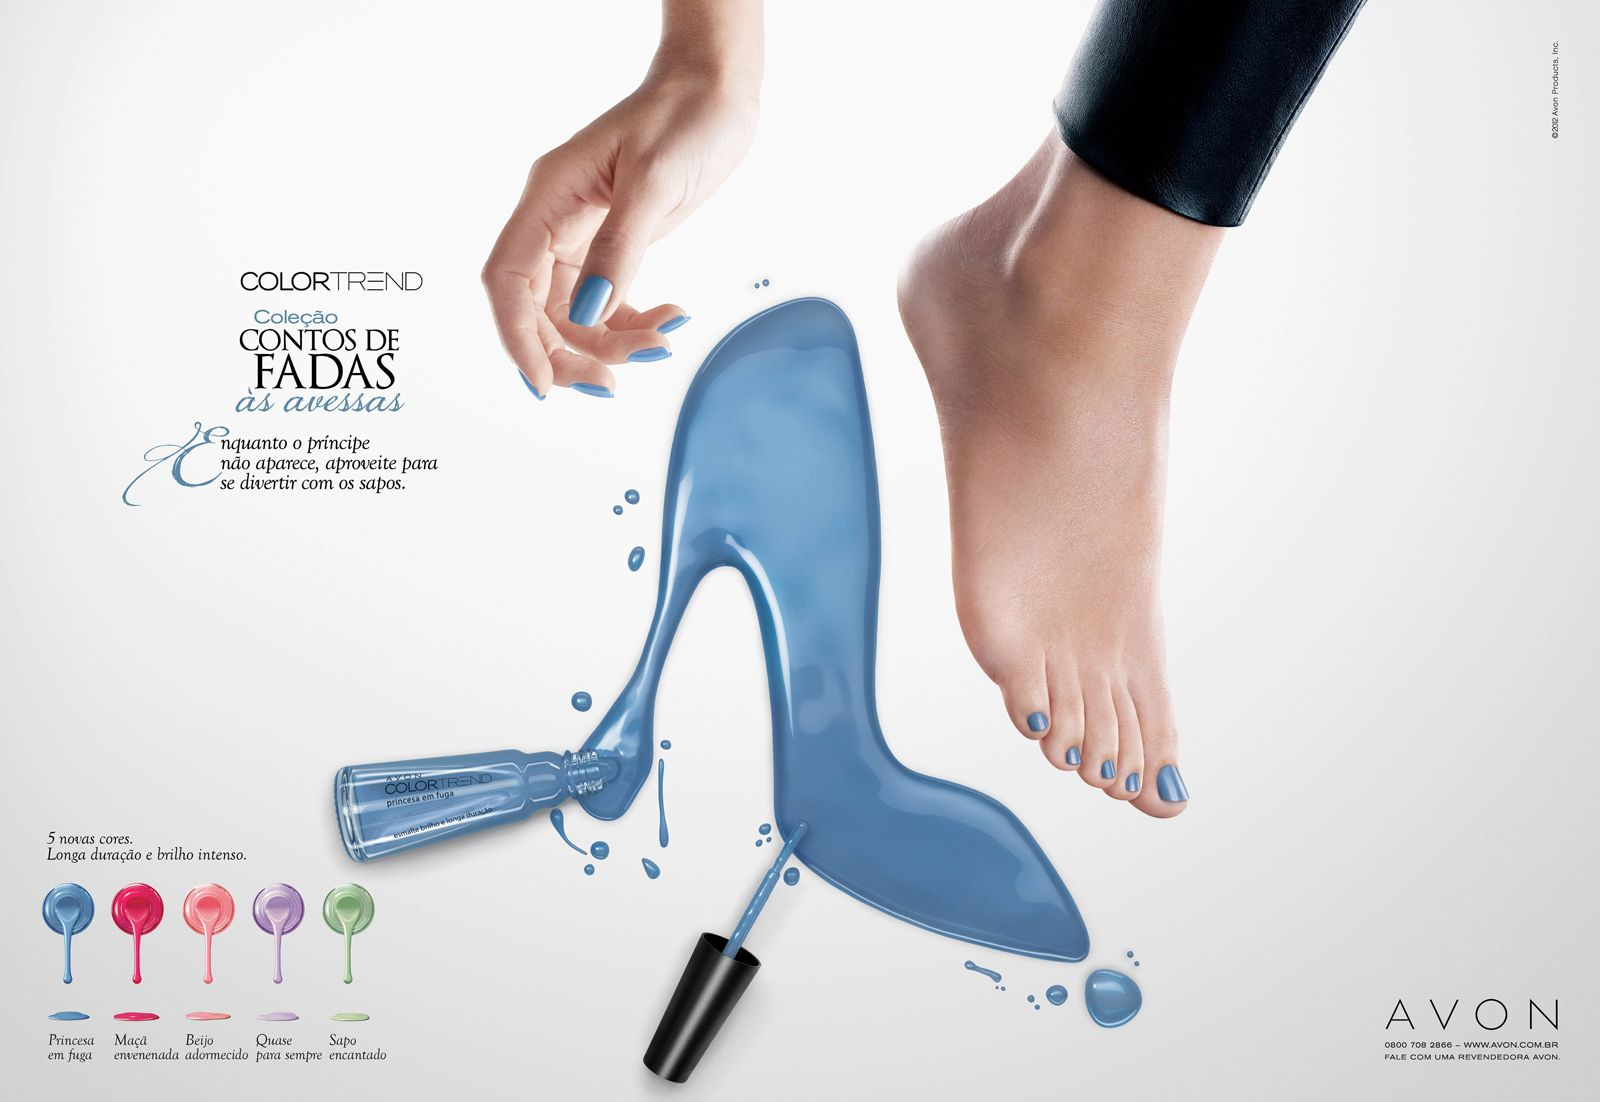 fairy tales avon ads avon is tying in the well known icons in classic princes stories to advertise their new nail polish colors i like how each of the